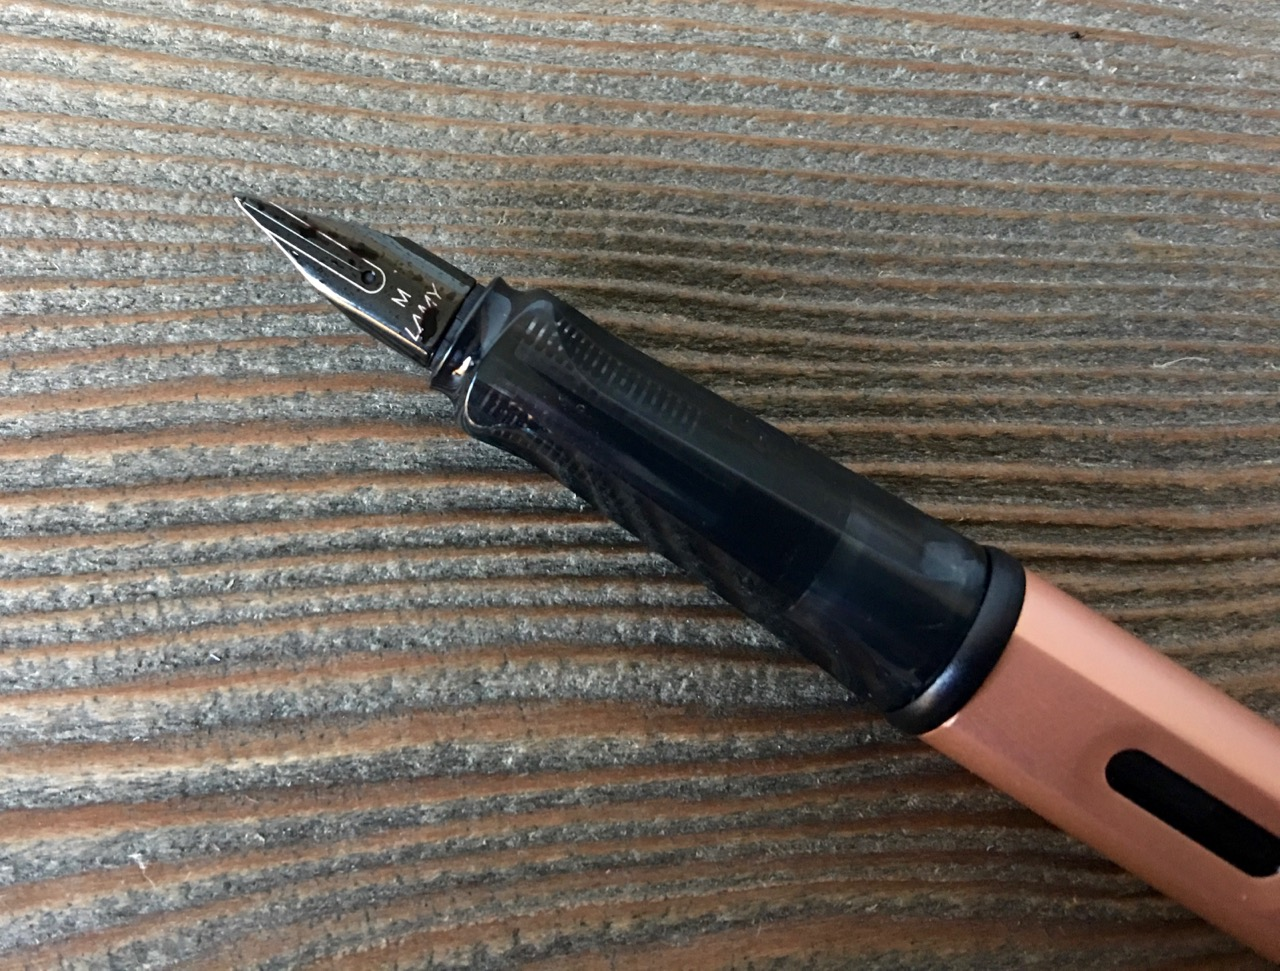 The sleek black nib